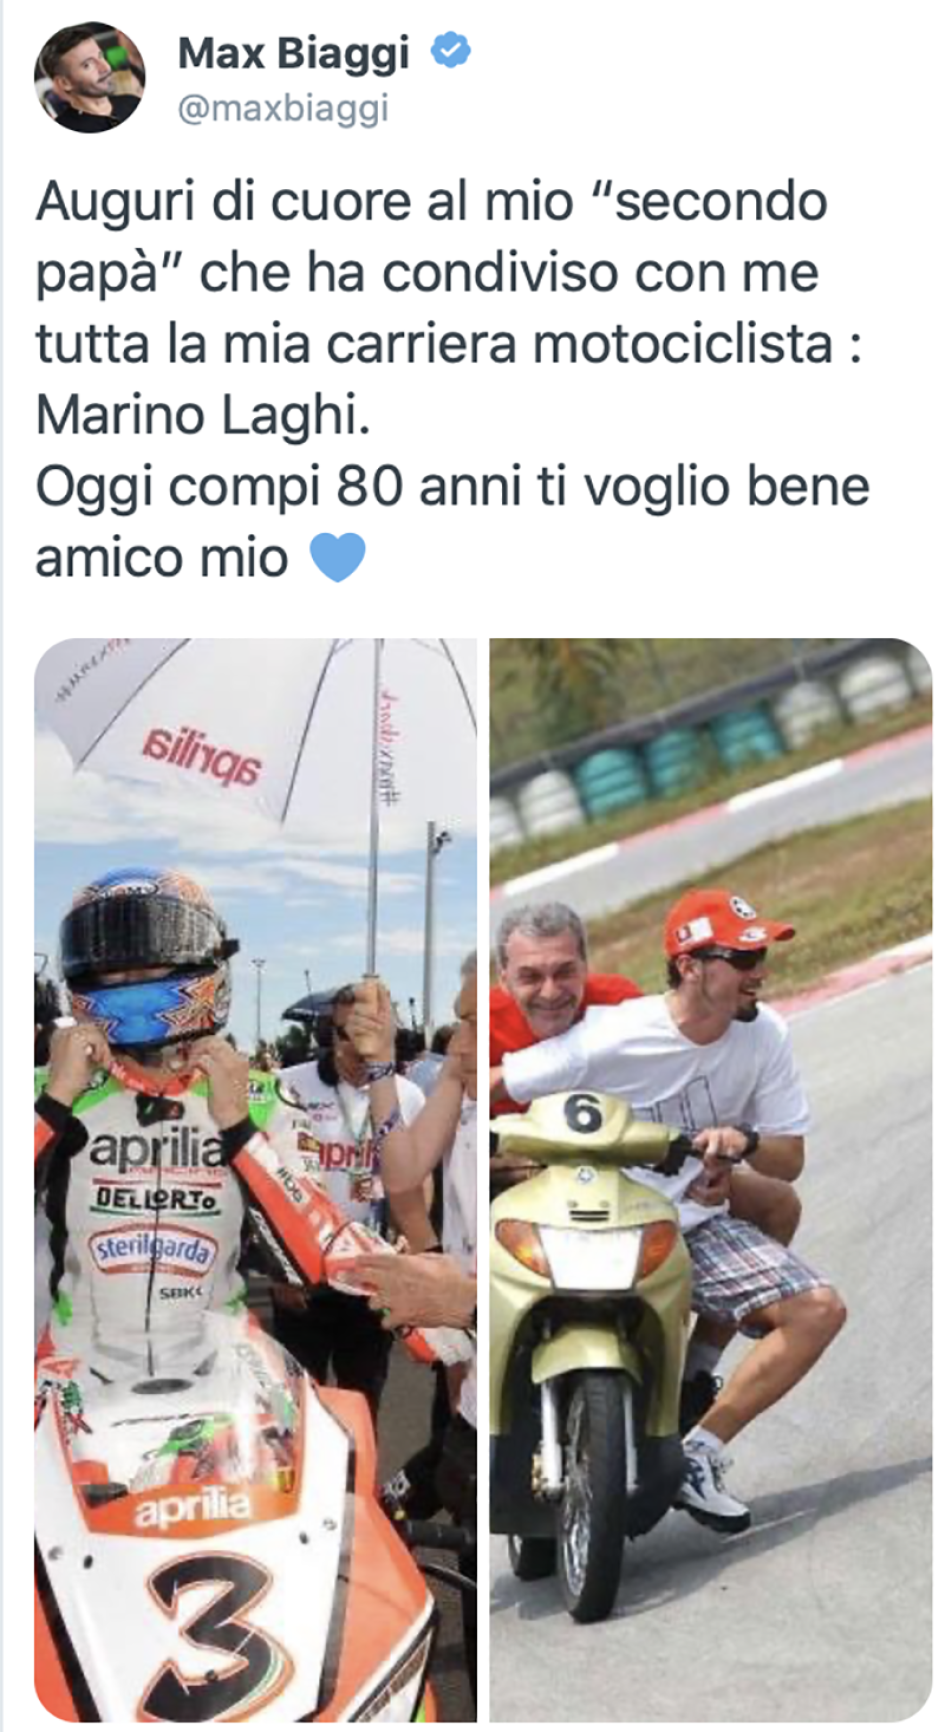 SBK: The historical physiotherapist of Biaggi, Marino Laghi turns 80 years old